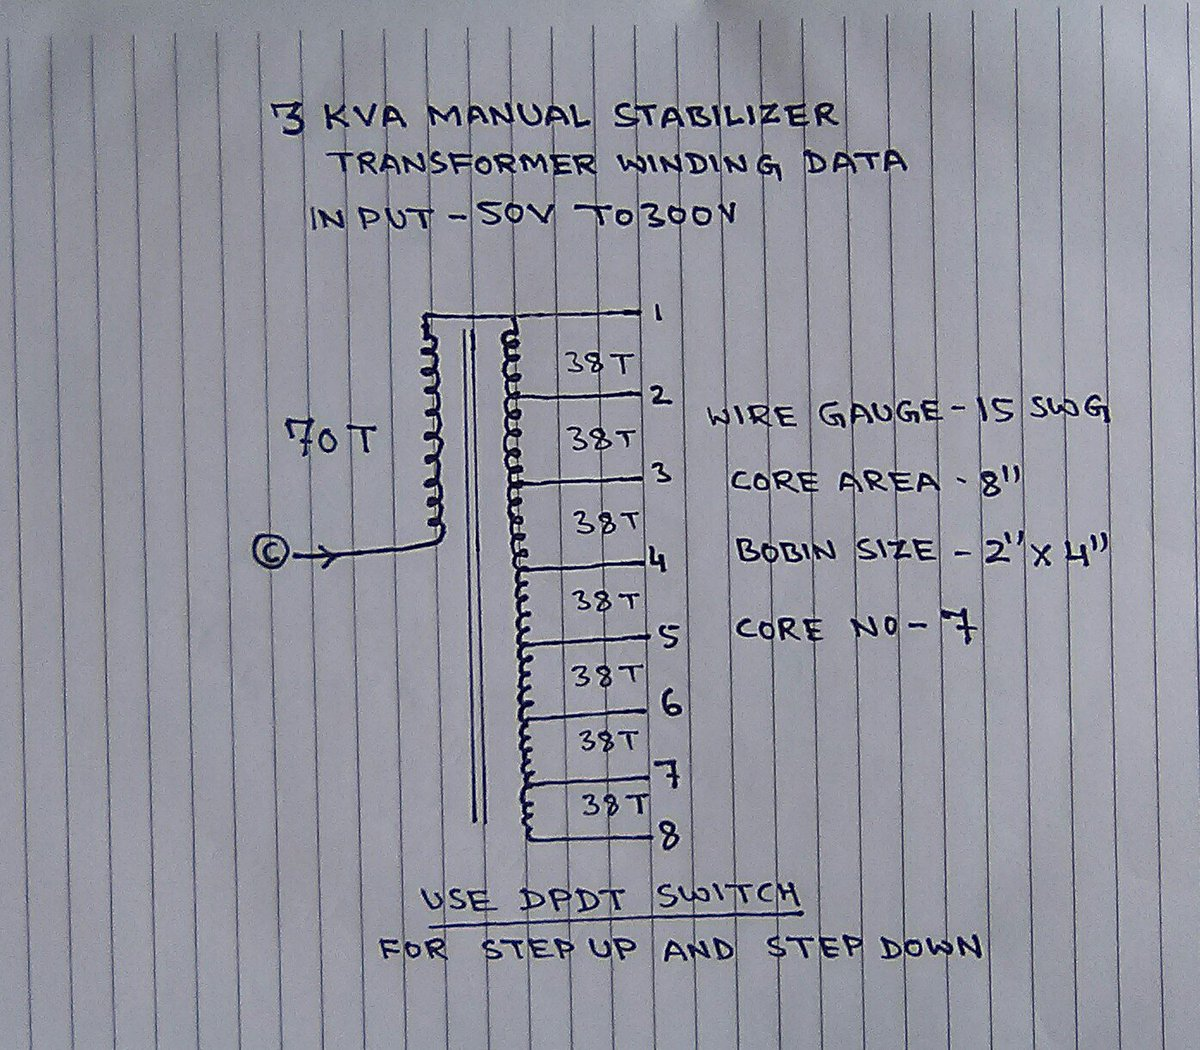 Automatic Voltage Stabilizer Circuit Guide And Troubleshooting Of Diagram Jsb Electric On Twitter Quot 3 Kva Manual Free